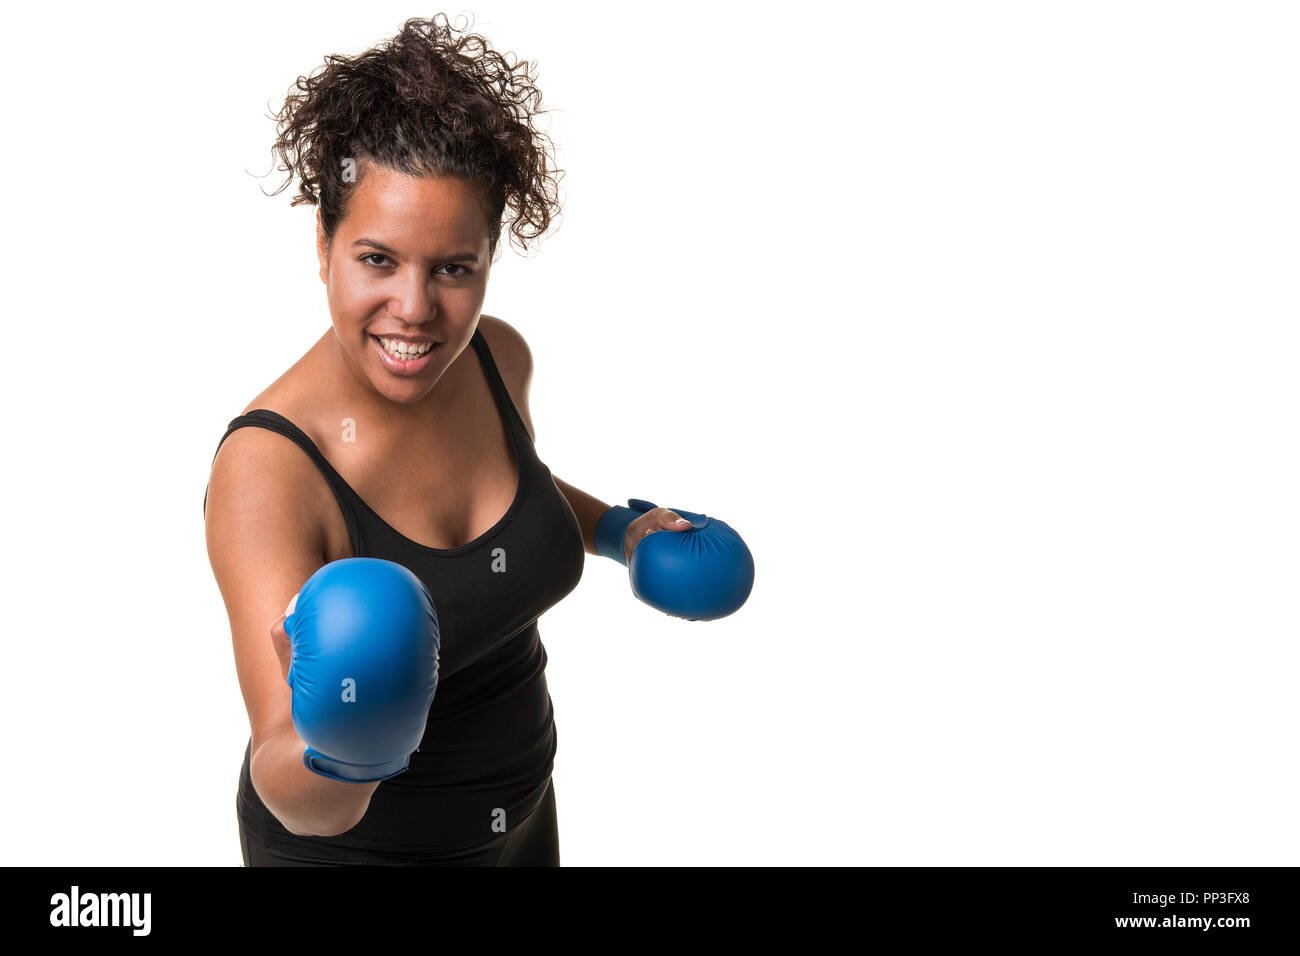 Young pretty black woman with blue boxing gloves working out isolated on a white background - Stock Image